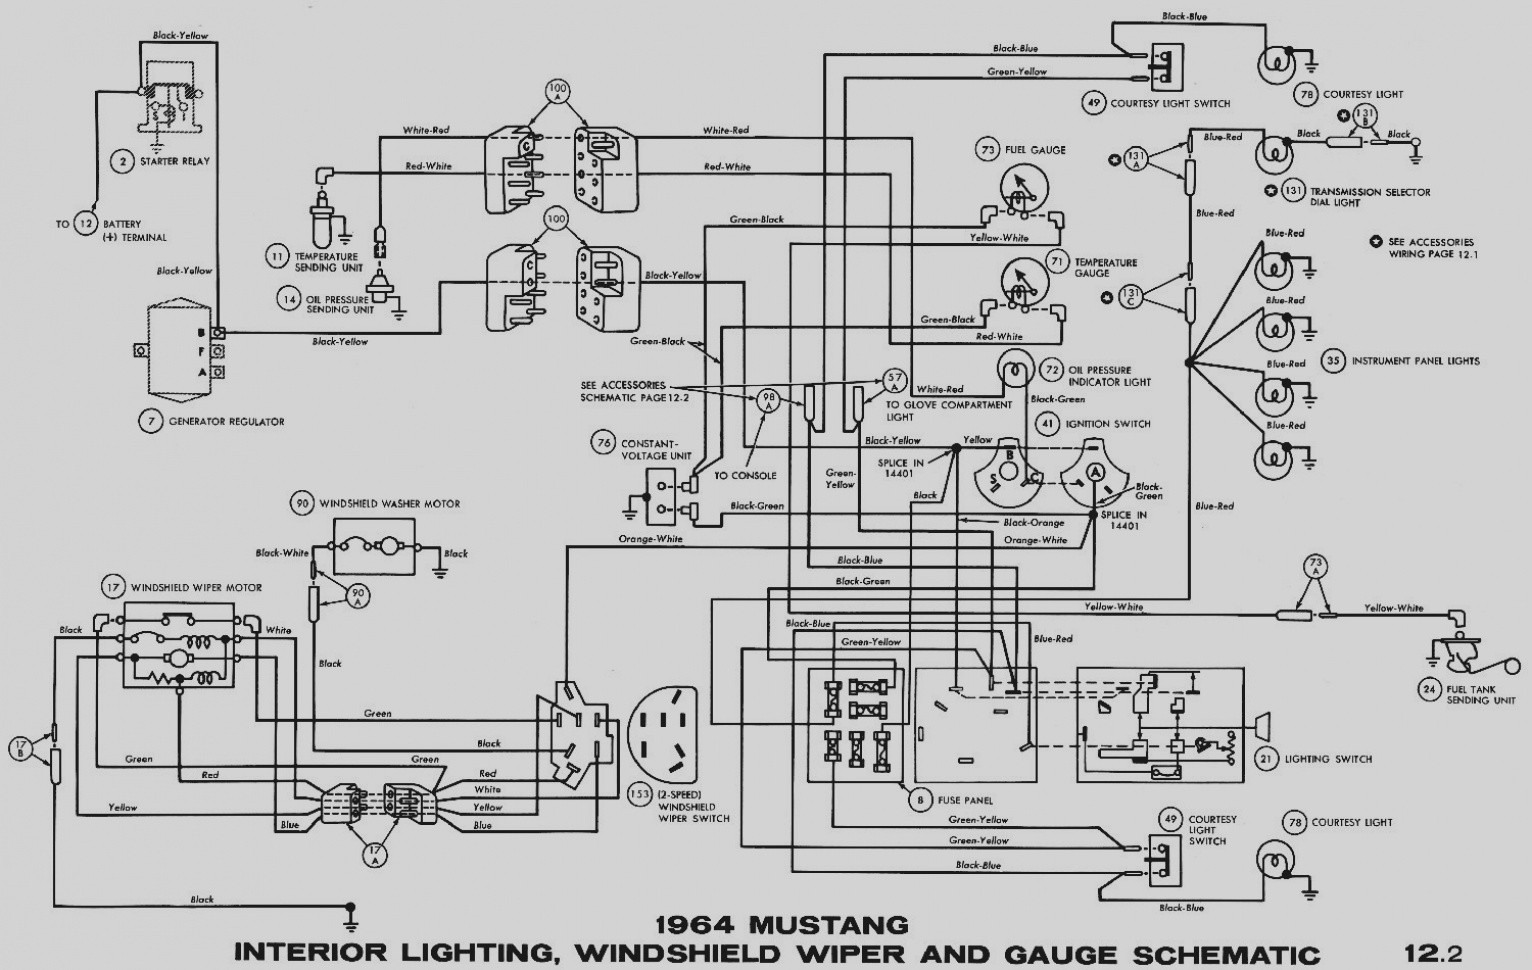 hight resolution of 1964 ford falcon wiper switch wiring diagram wiring diagram dataford falcon fuse panel repair kit ford